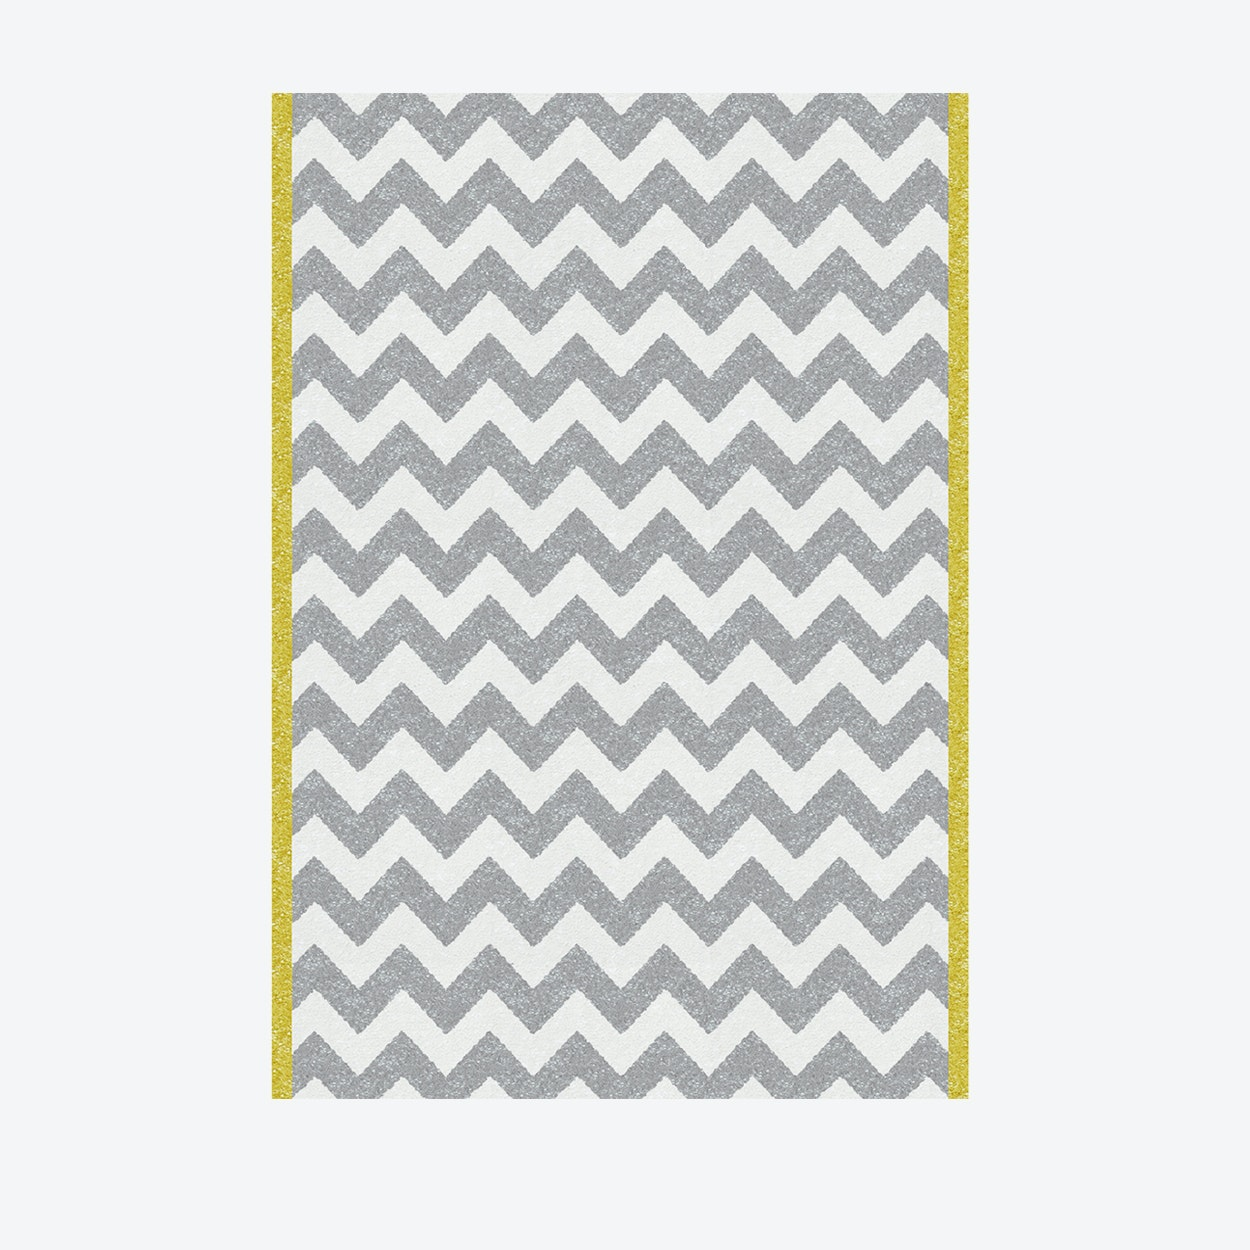 Chevron Rug By Afkliving Fy